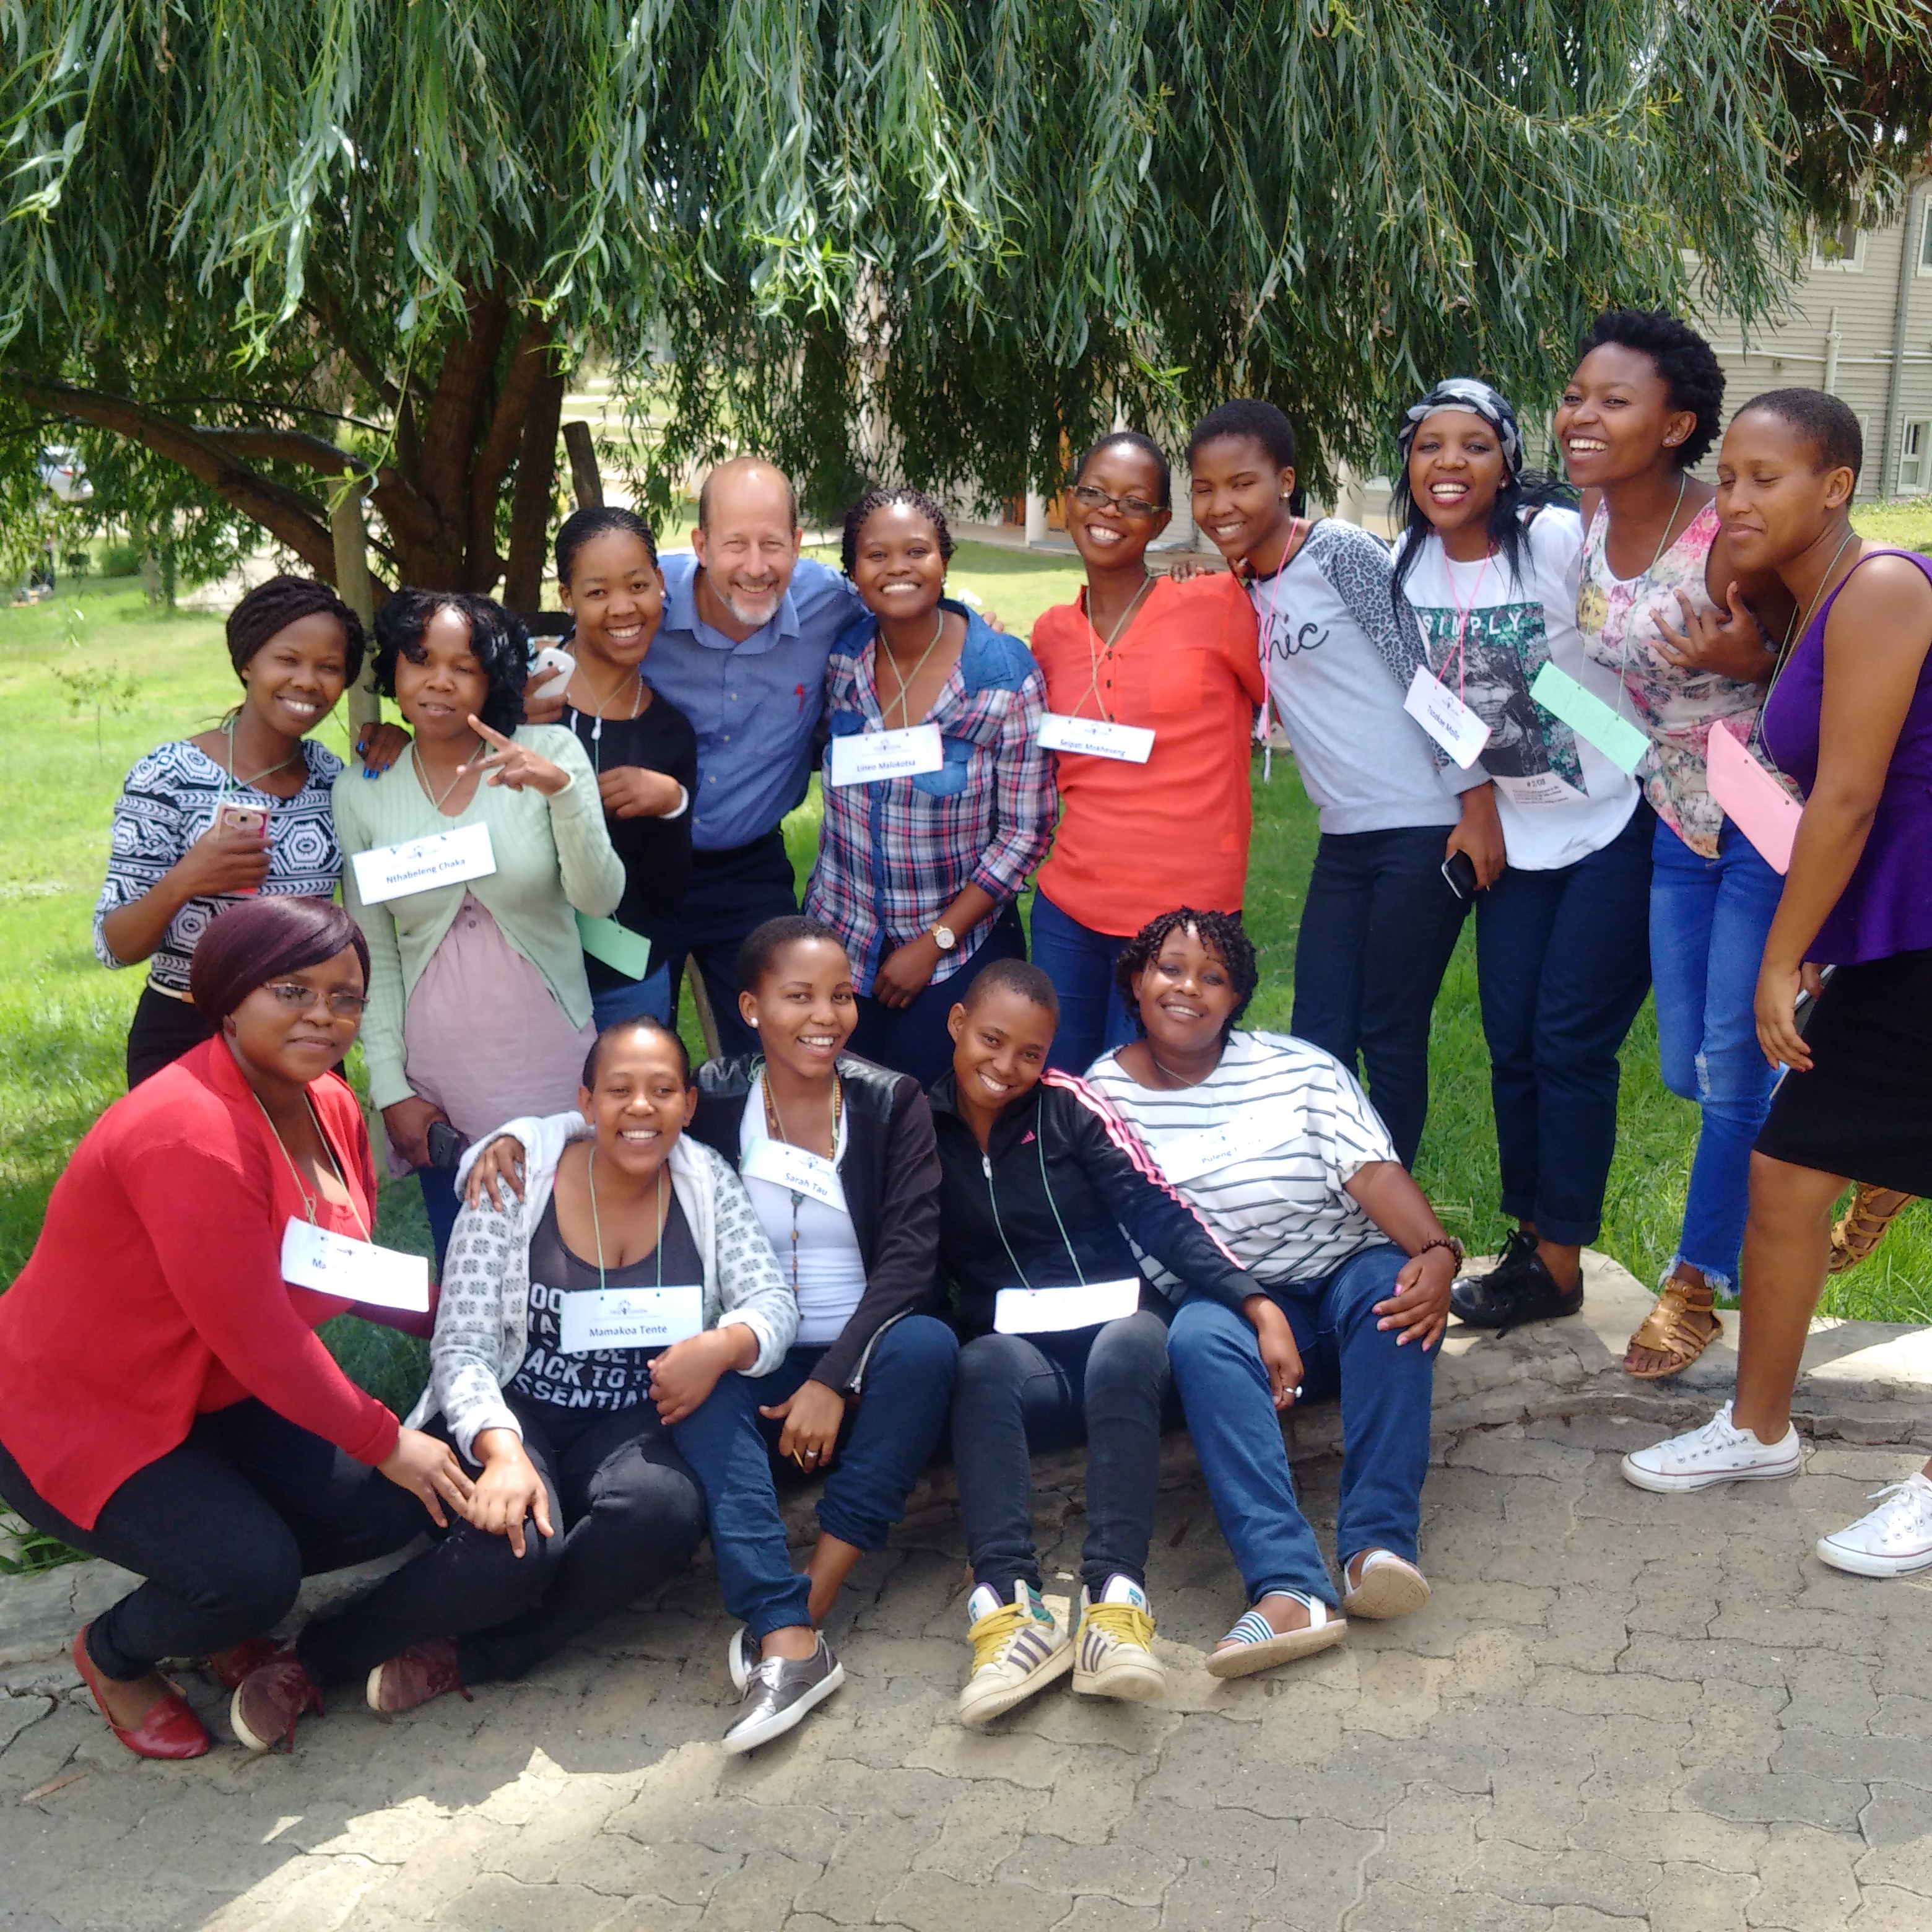 Students in Lesotho Southern Africa